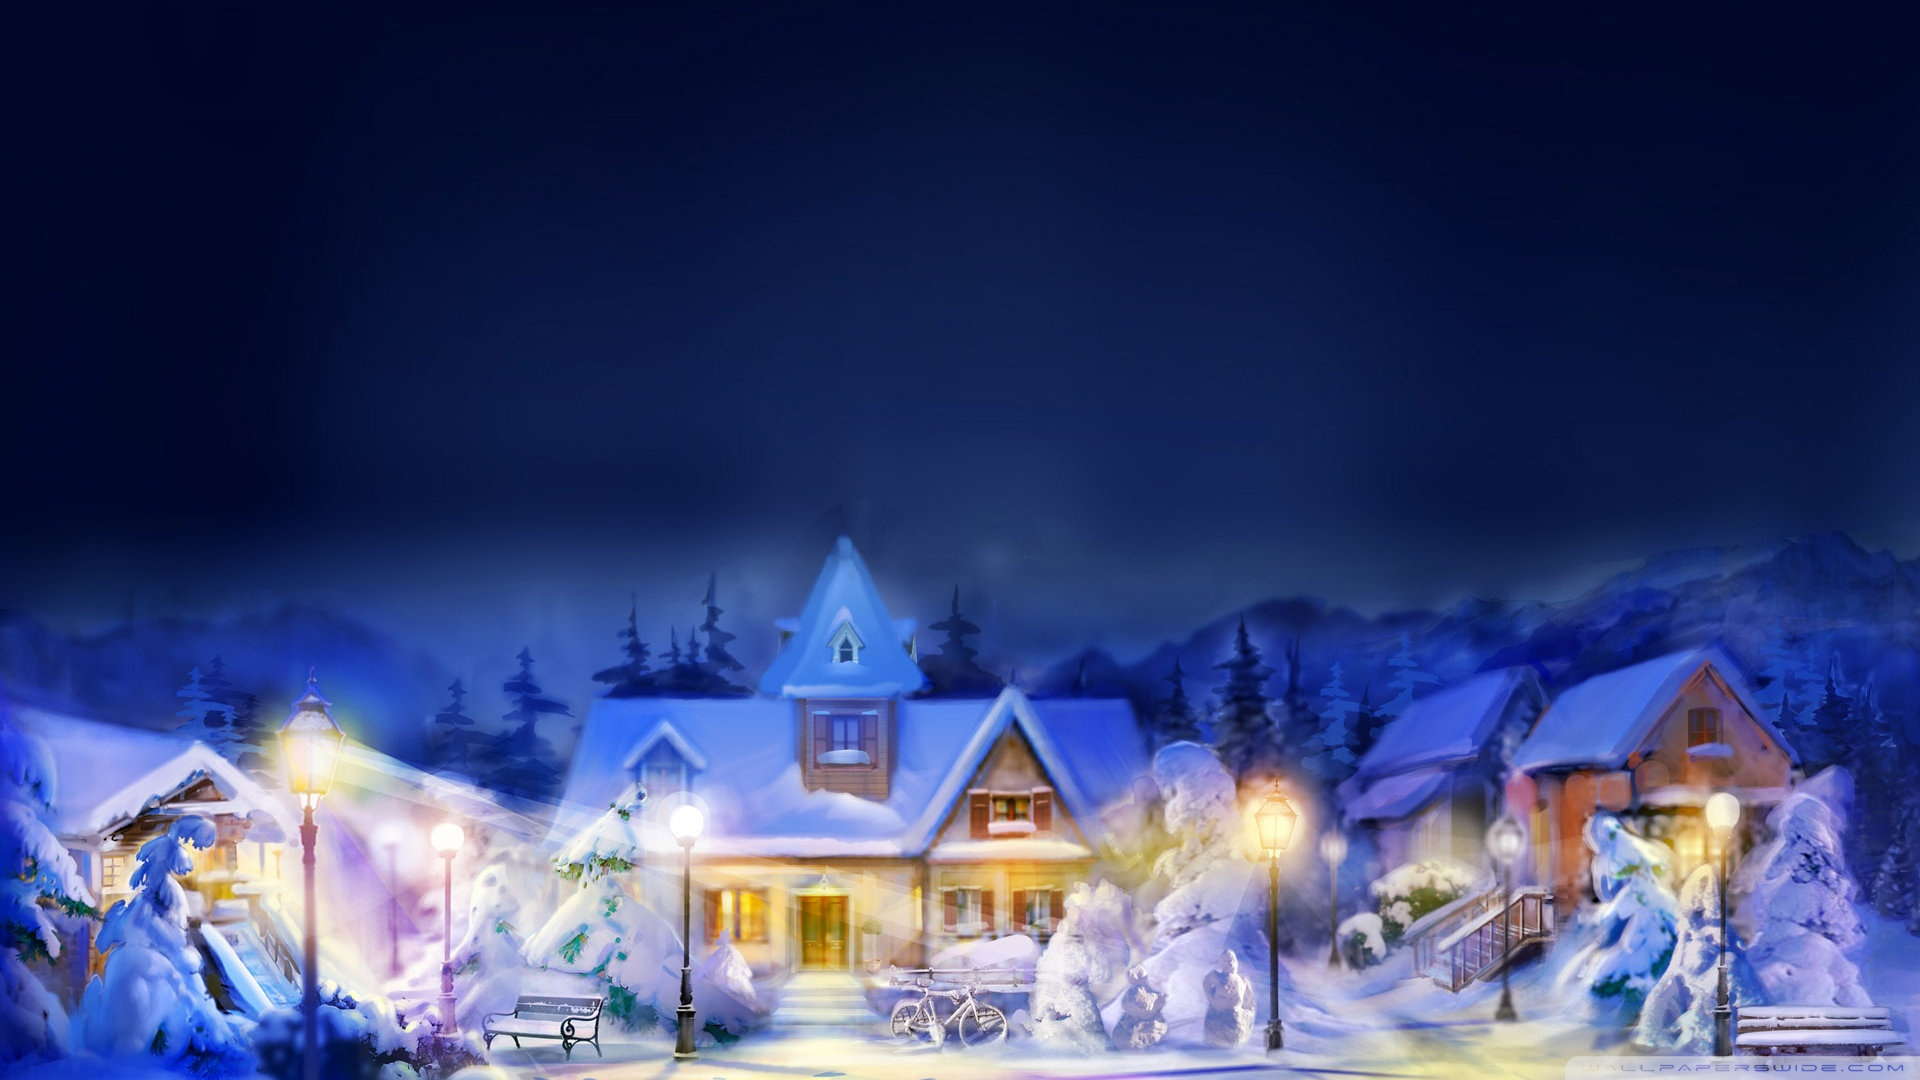 christmas town scene hd desktop wallpaper widescreen high src